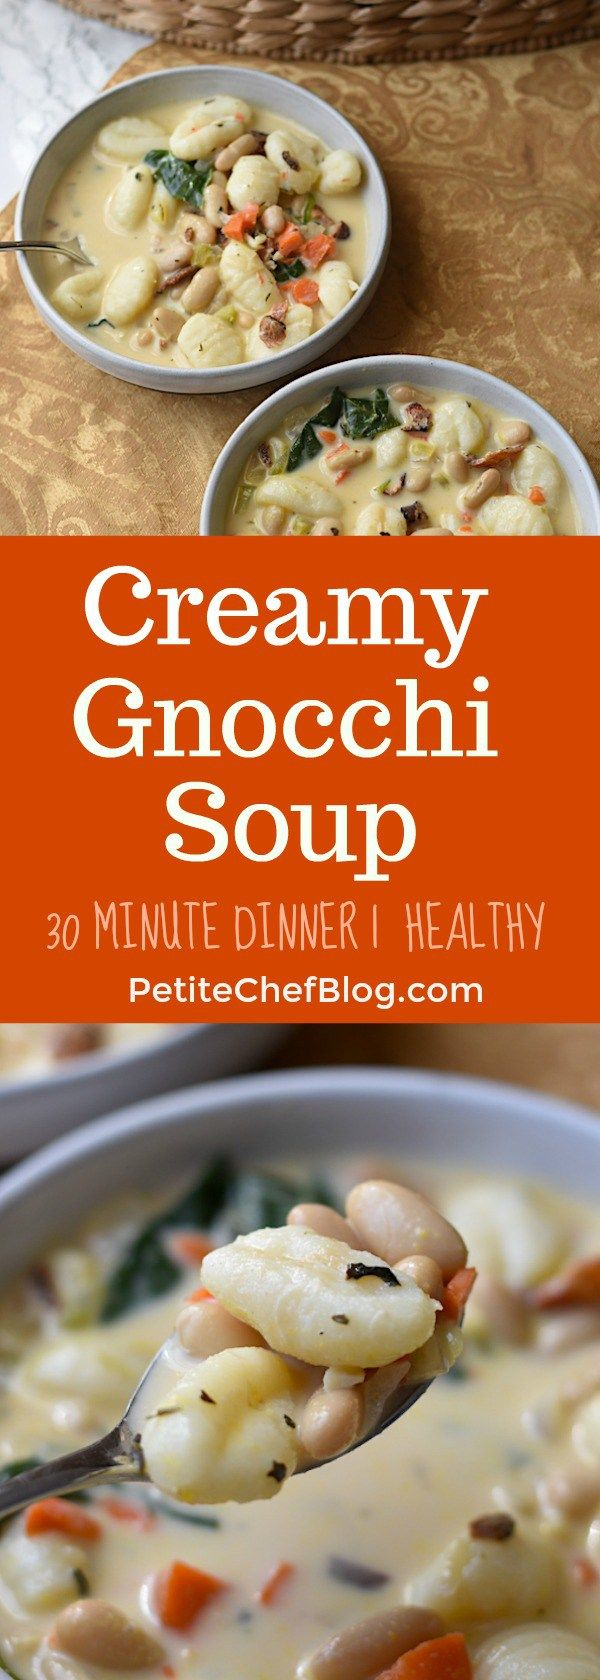 Creamy Gnocchi and Vegetable Soup Recipe | Ready in just 20 minutes! | Easy dinner recipe | PETITECHEFBLOG.COM